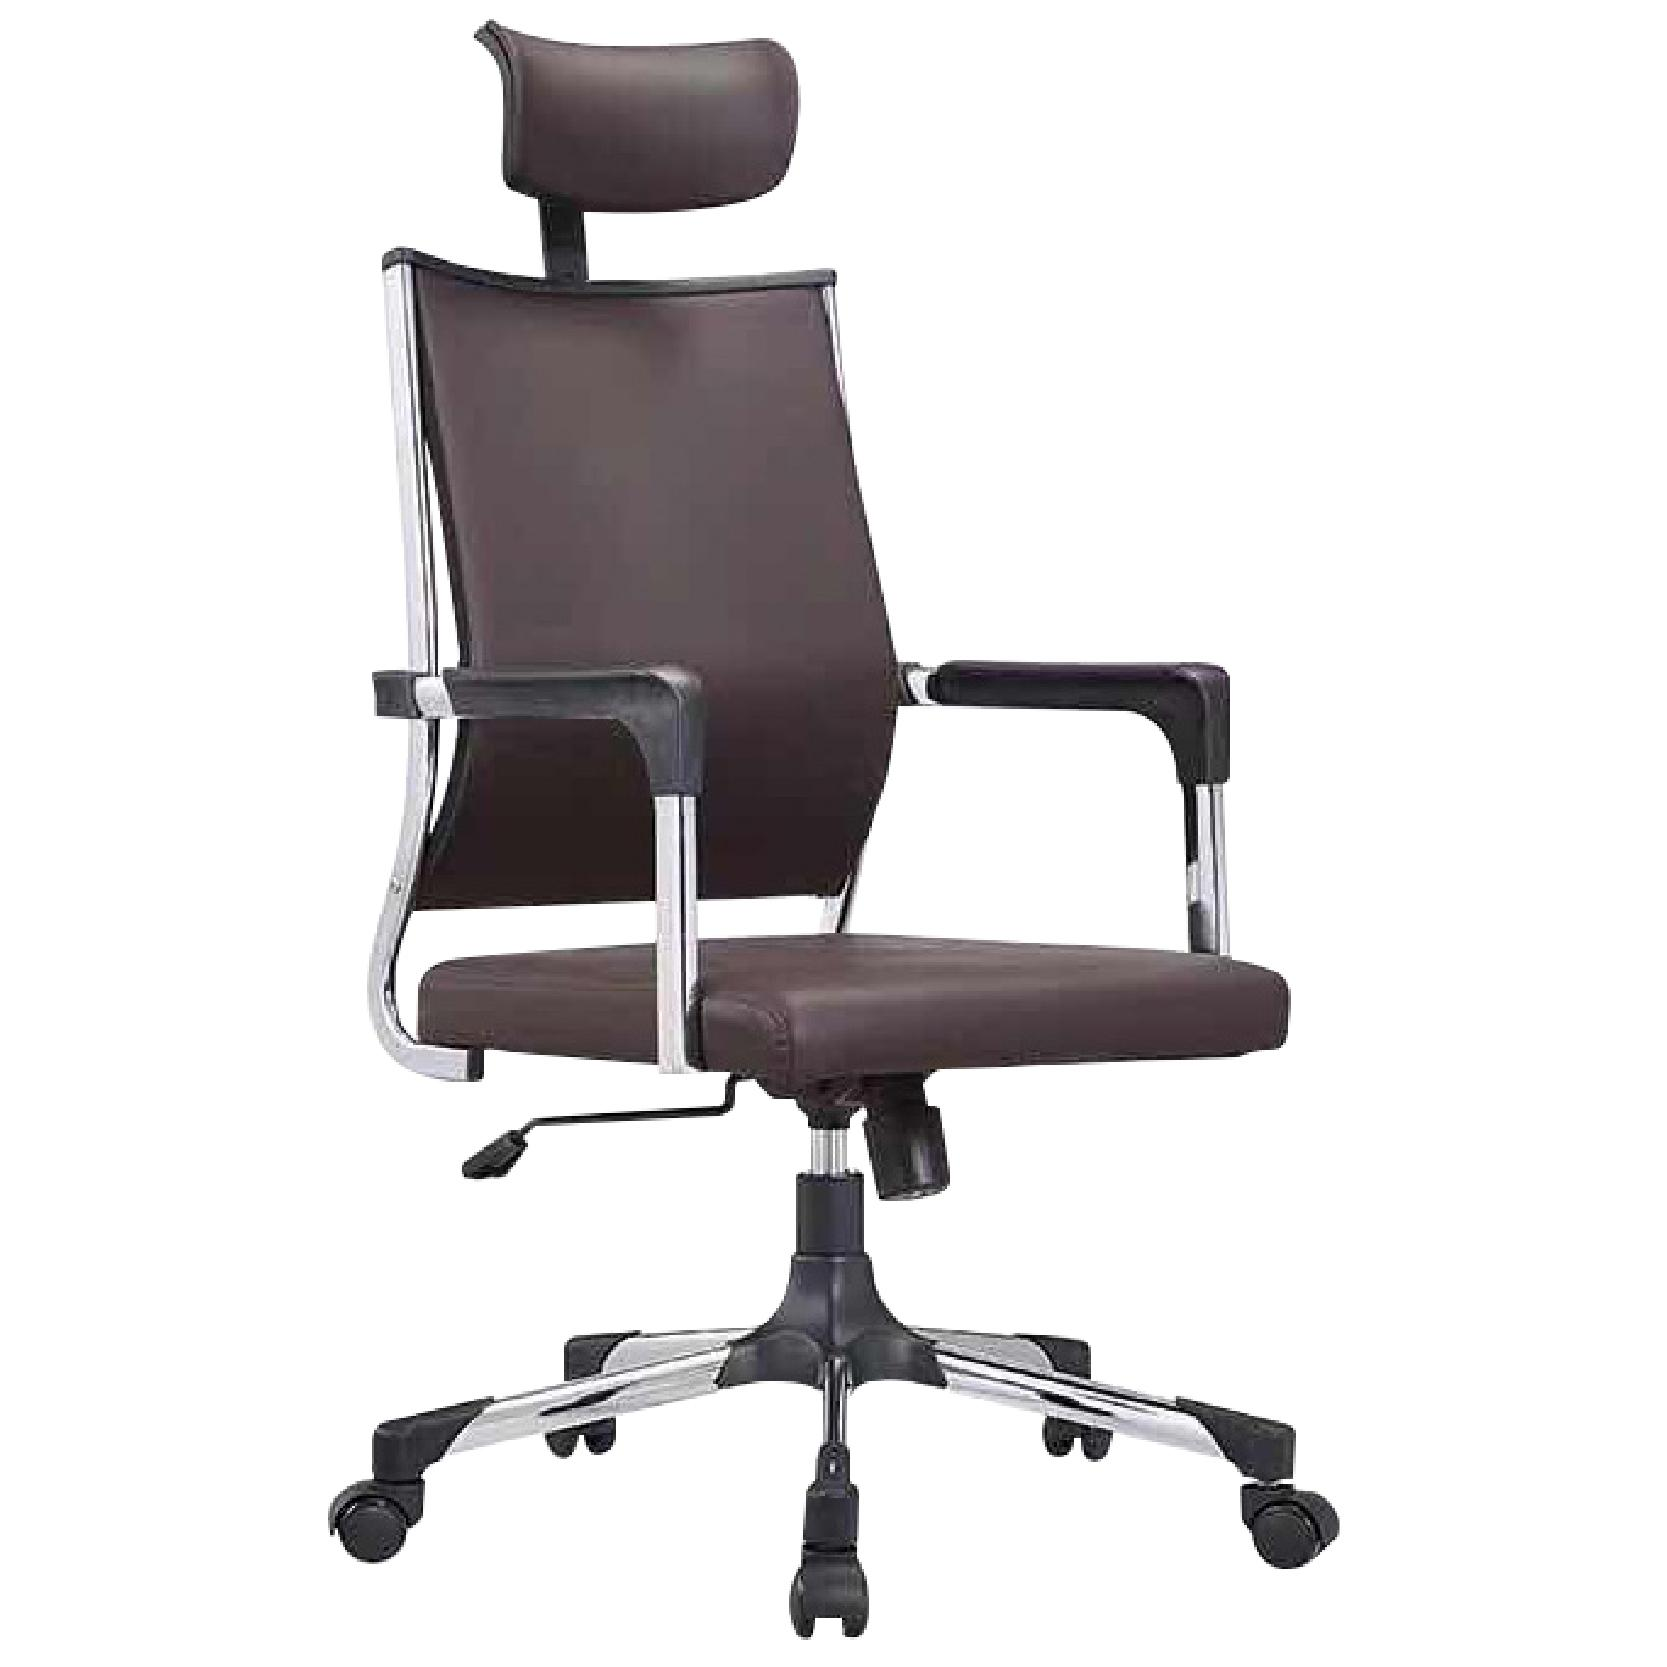 JIJI (TESSA Premium Manager Chair Ver 1 - Leather) / Office Chair / Study Chair / Adjustable Chair / Rotatable Chair / 12 Month Waranty / Free Installation / (SG)